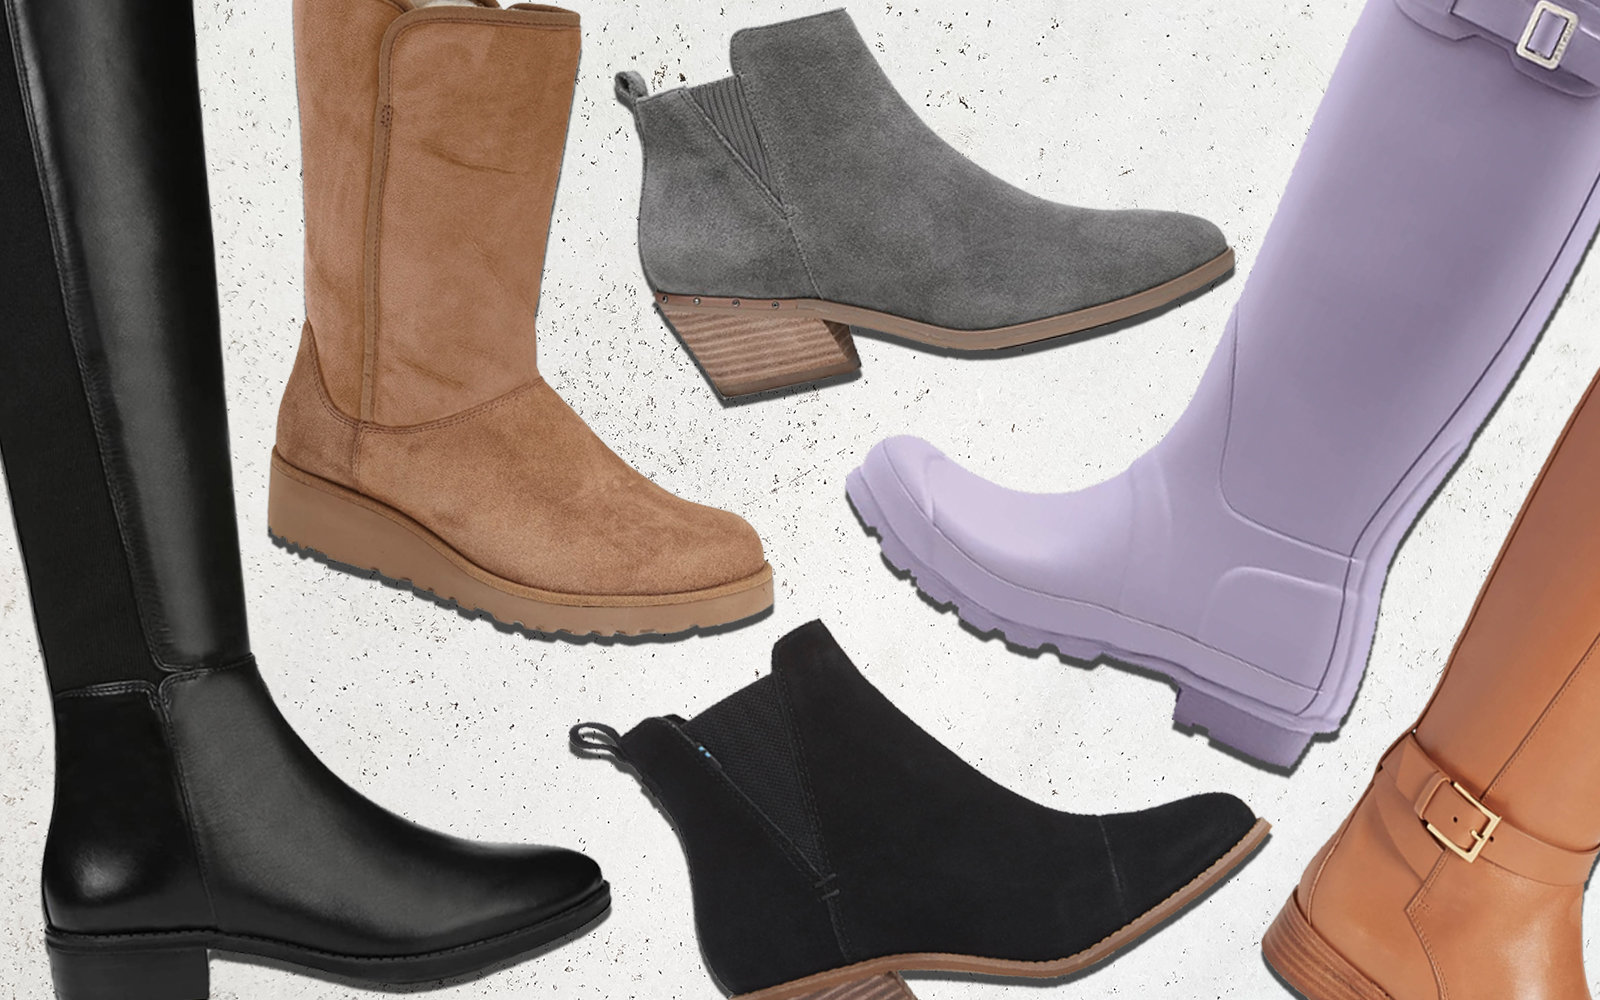 8a469a147a1 The Best Boots on Sale at Nordstrom Right Now